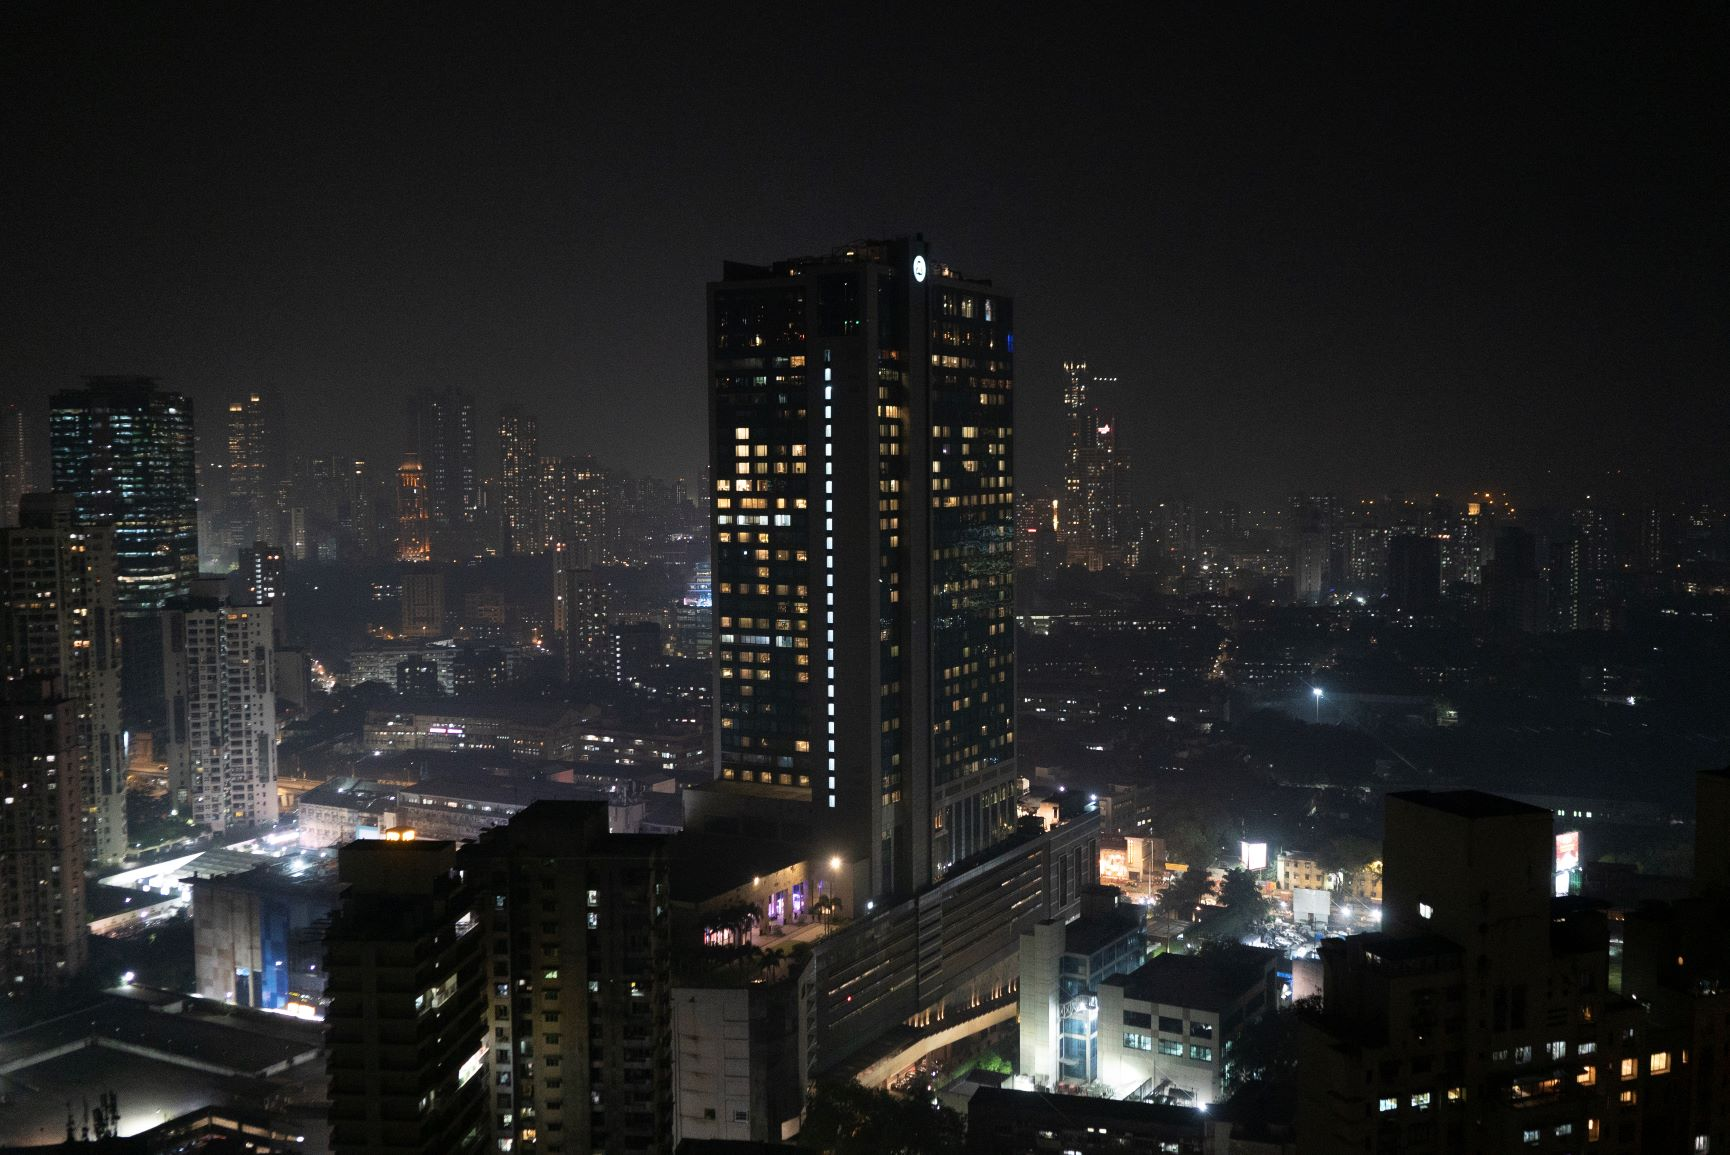 Impact of lockdown on India's electricity sector